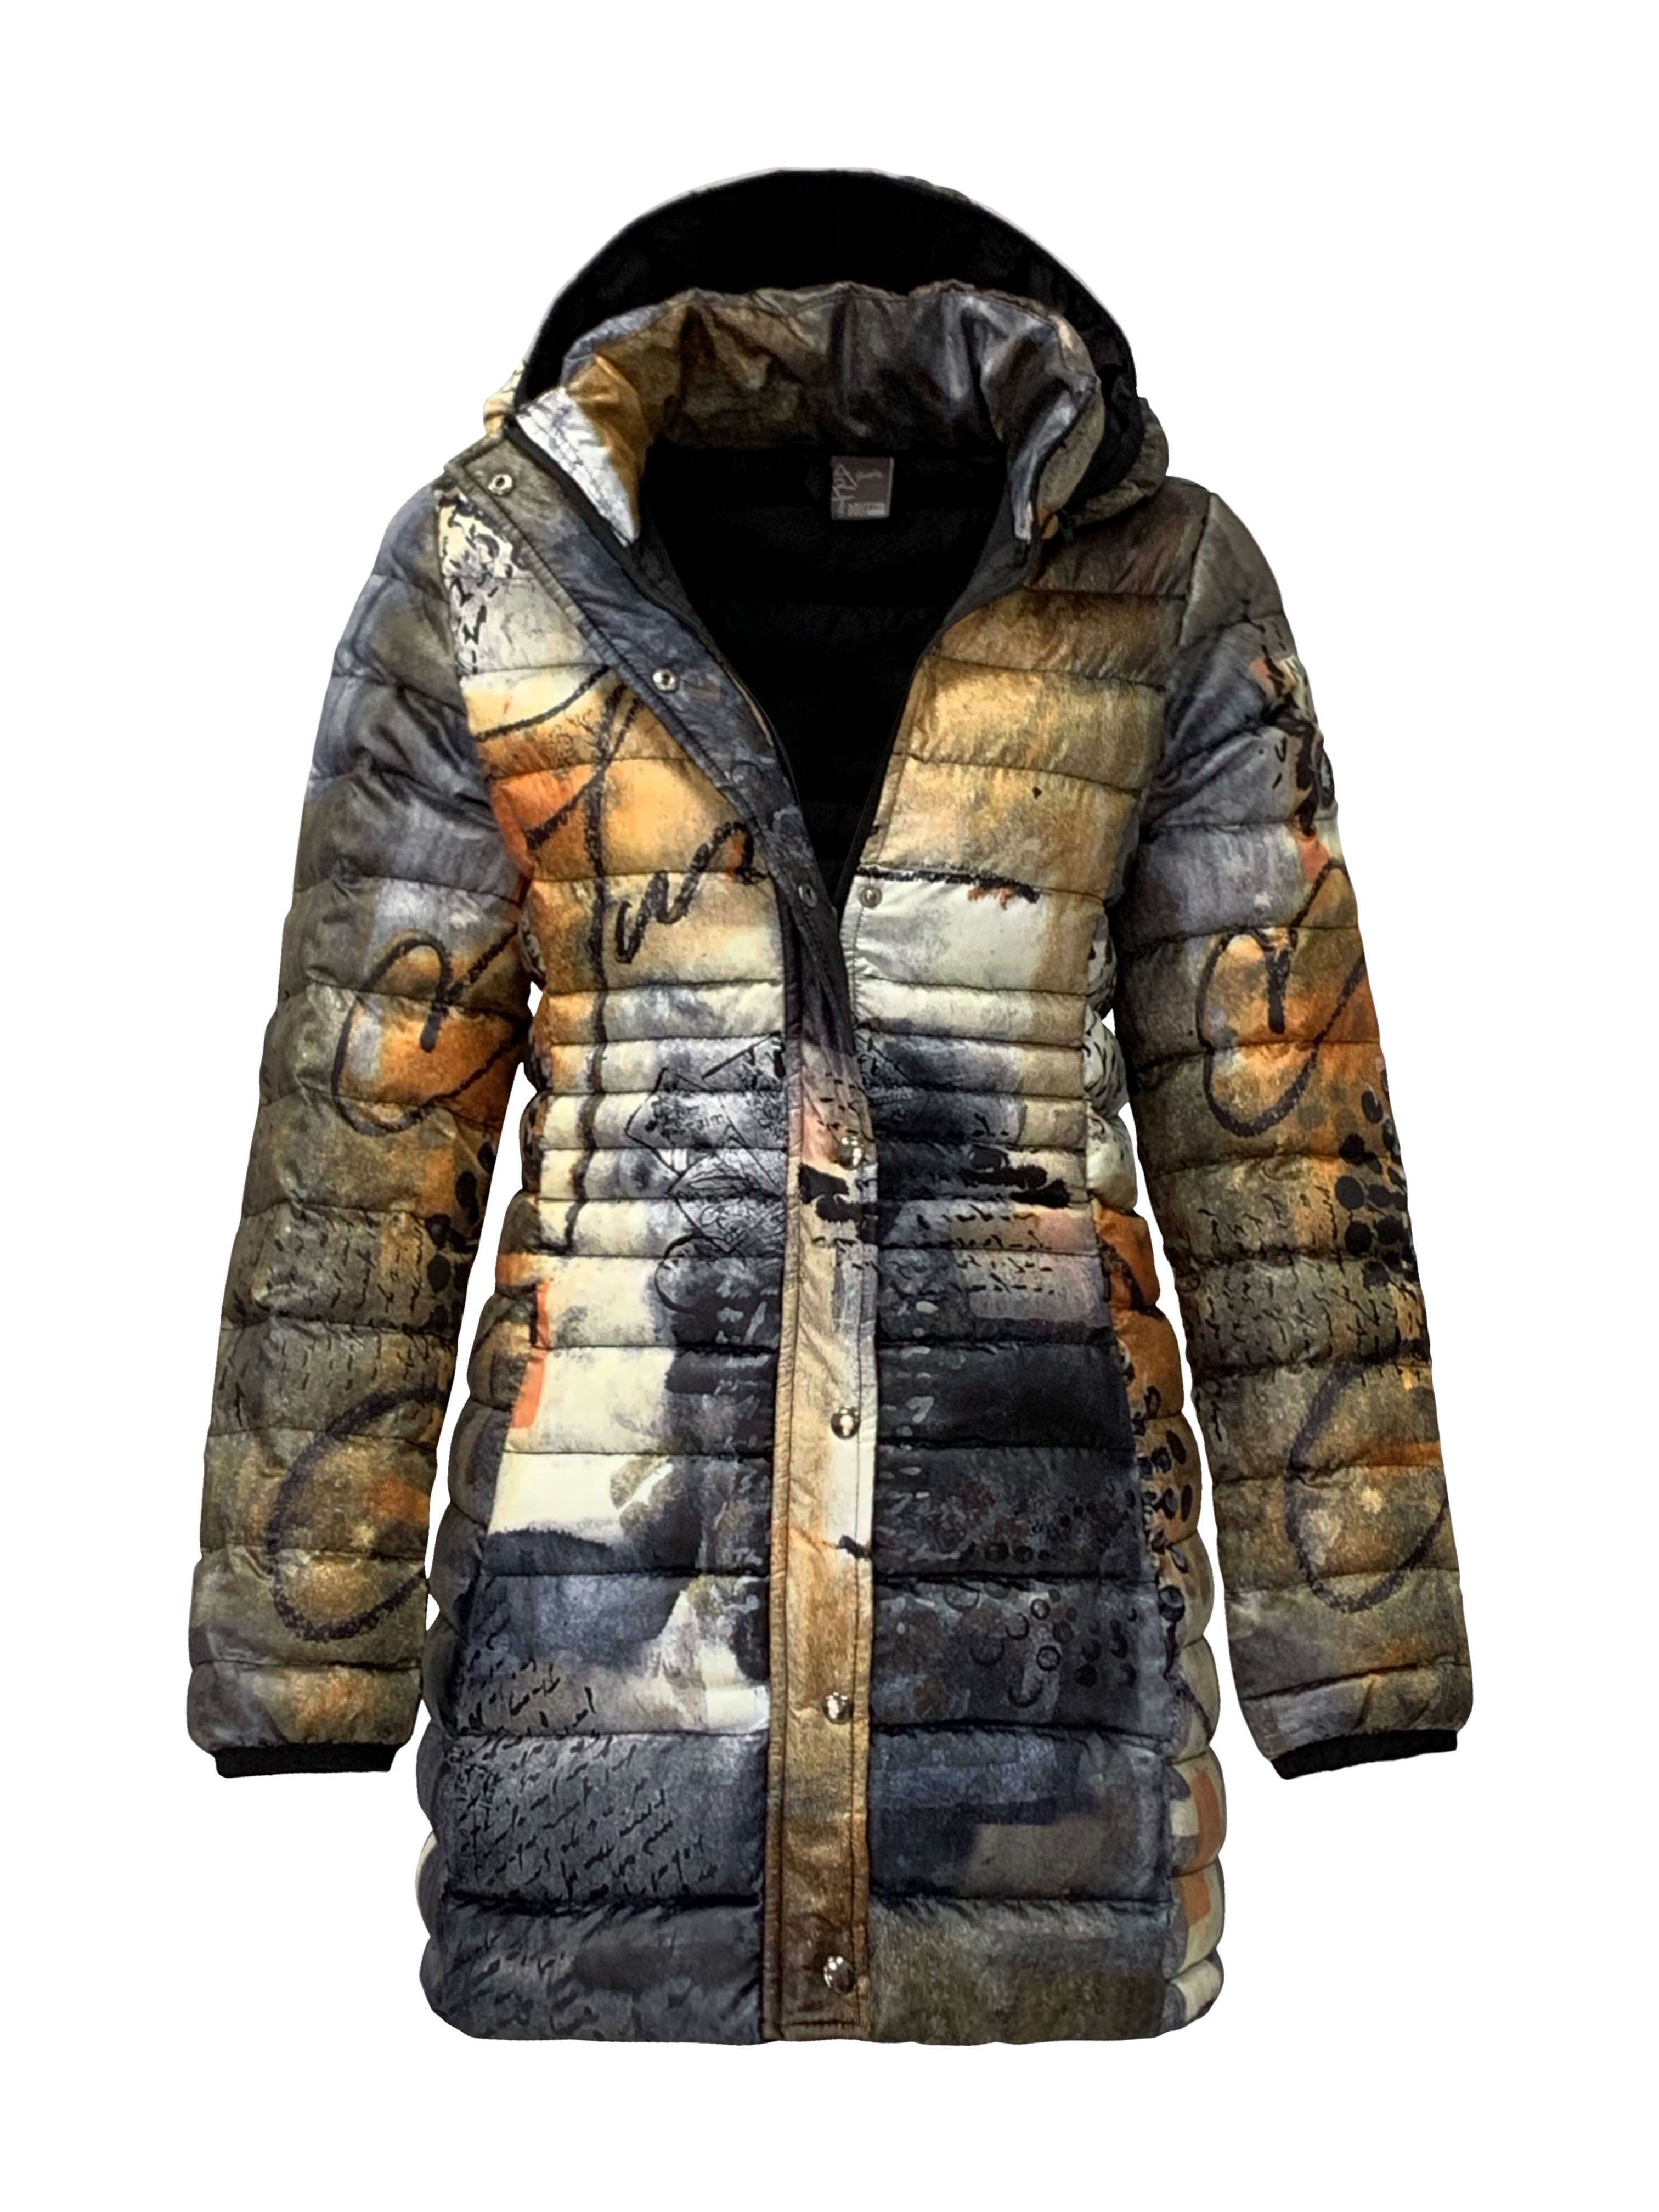 Simply Art Dolcezza: Romantic Rhythm Quilled Abstract Art Puffer Coat SOLD OUT